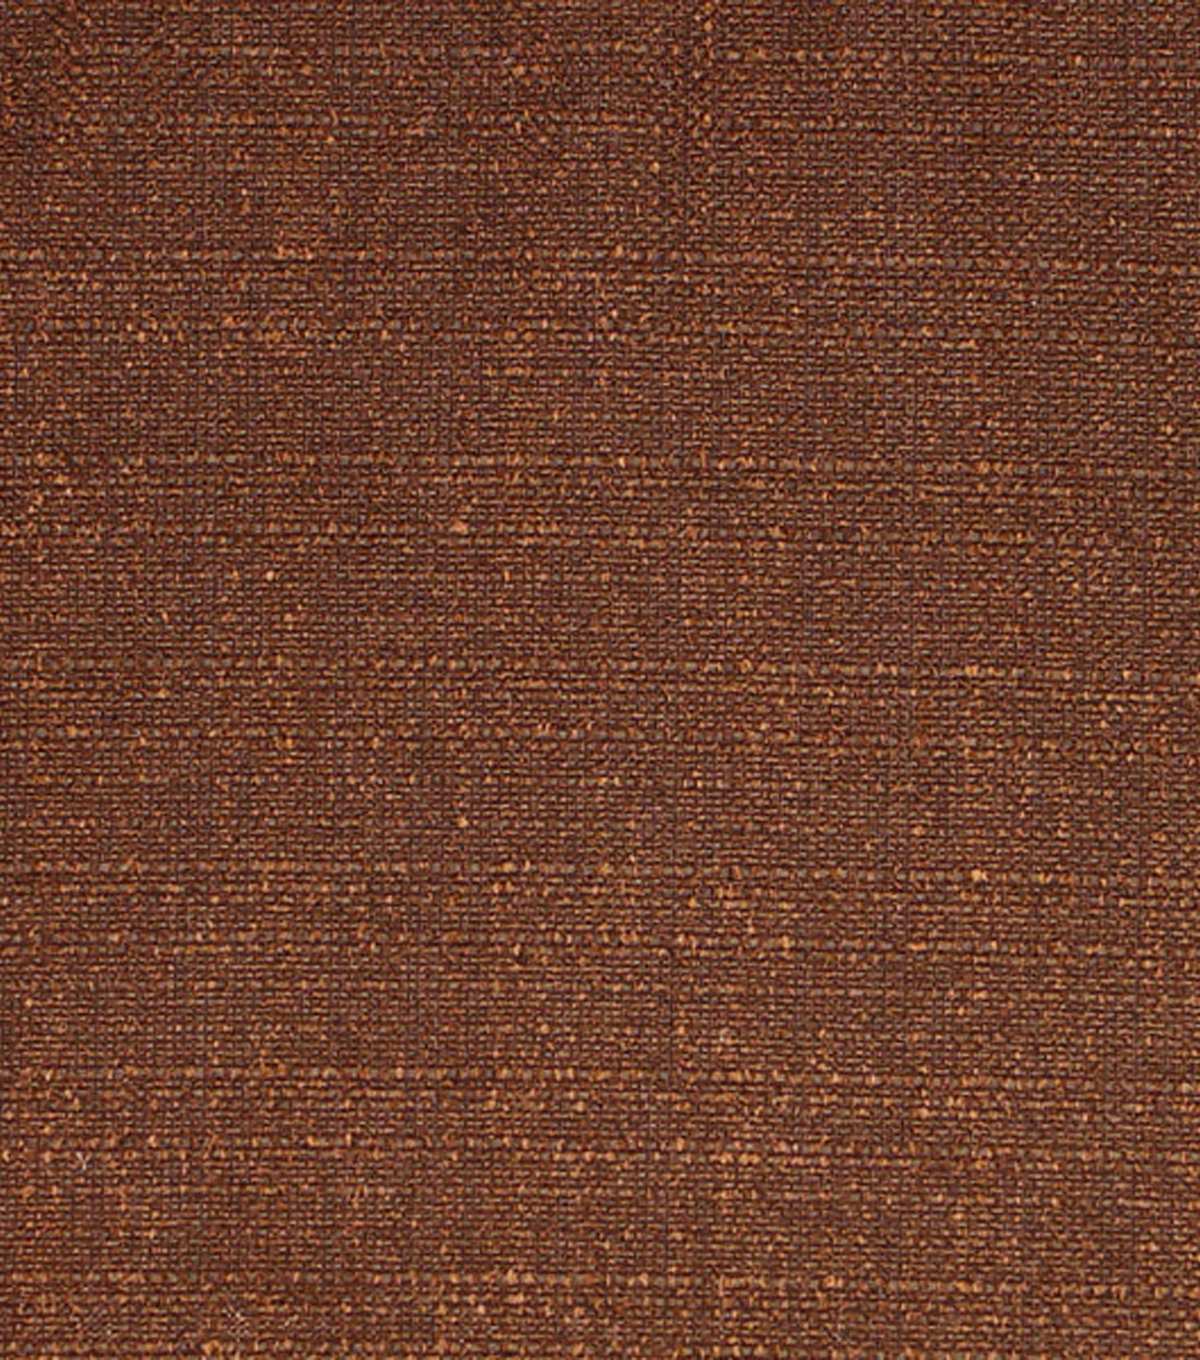 Home Decor 8\u0022x8\u0022 Fabric Swatch-Barrow  M9134-5981 Java